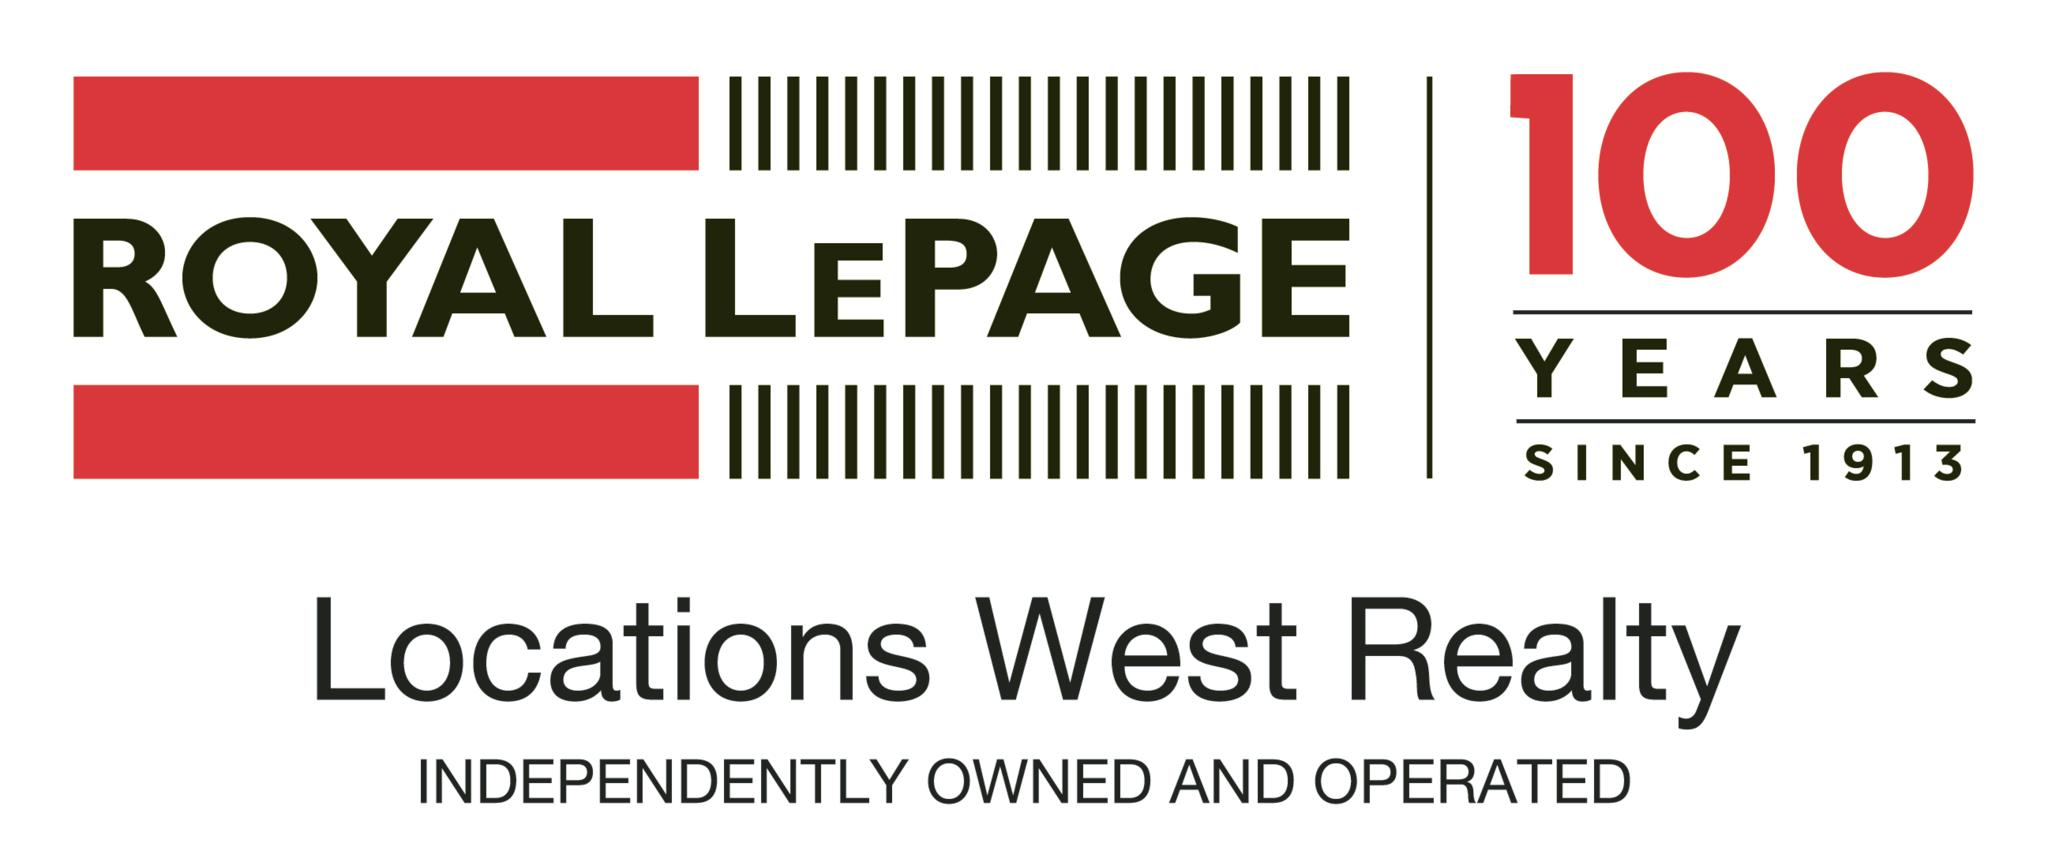 Royal LePage in Penticton